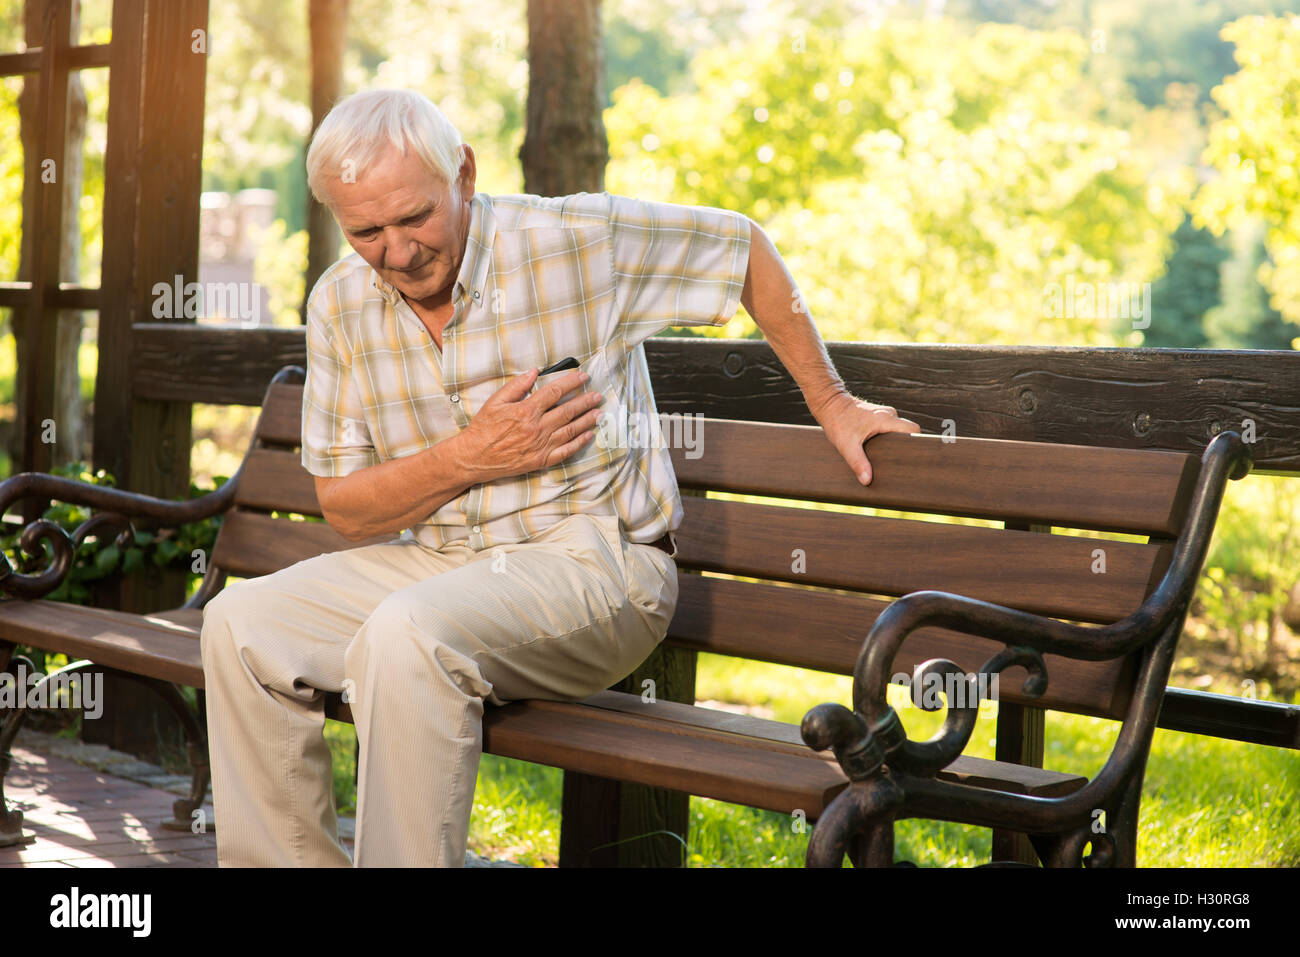 Senior guy has heartache. - Stock Image